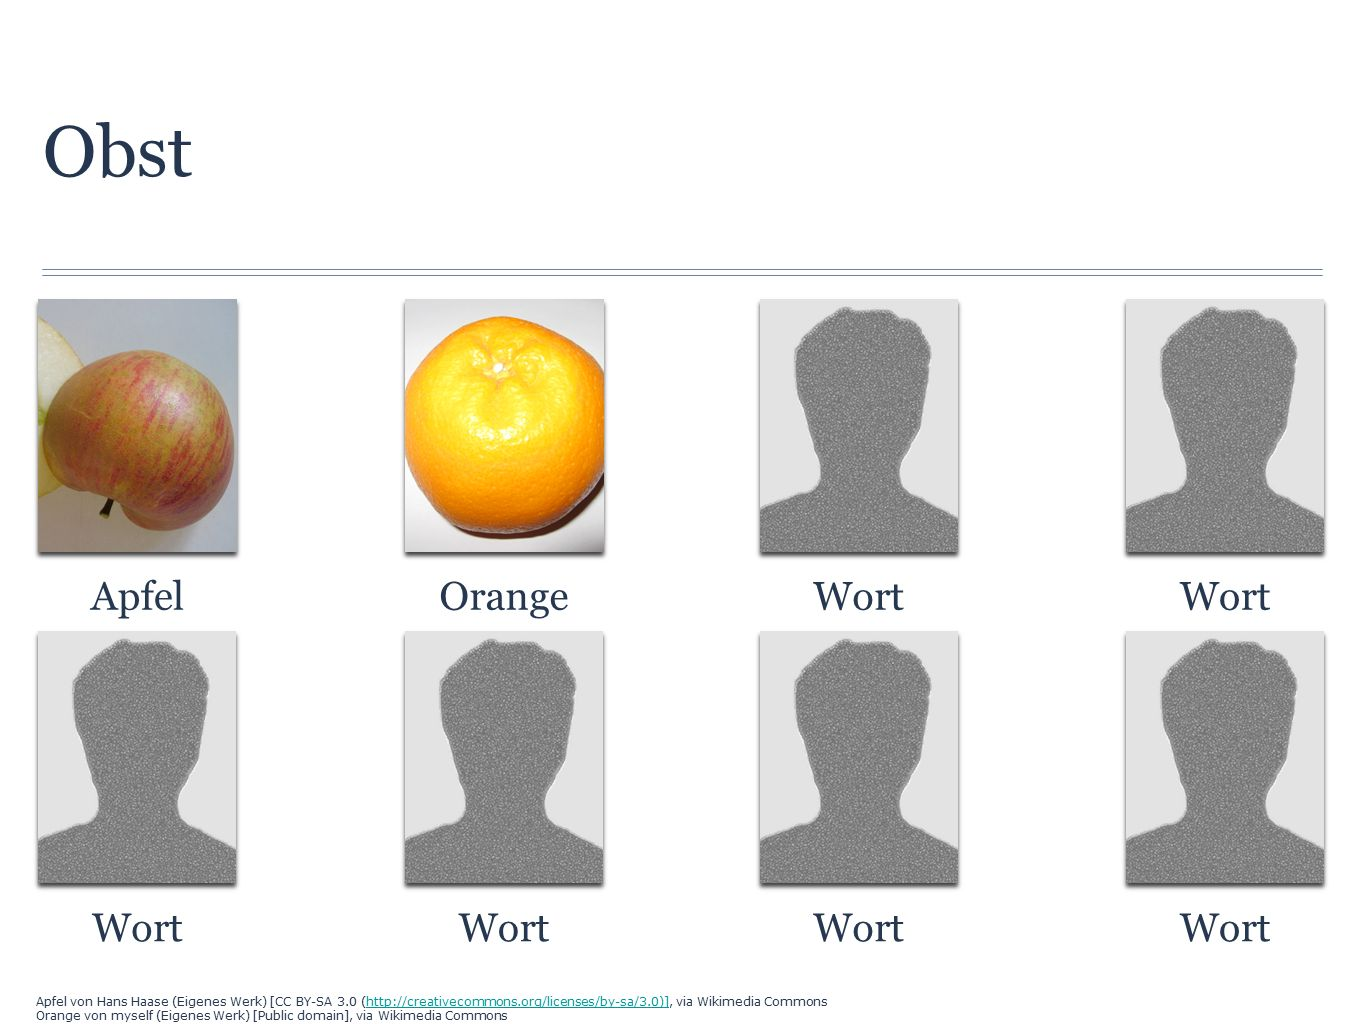 Obst ApfelOrangeWort Apfel von Hans Haase (Eigenes Werk) [CC BY-SA 3.0 (http://creativecommons.org/licenses/by-sa/3.0)], via Wikimedia Commonshttp://creativecommons.org/licenses/by-sa/3.0)] Orange von myself (Eigenes Werk) [Public domain], via Wikimedia Commons